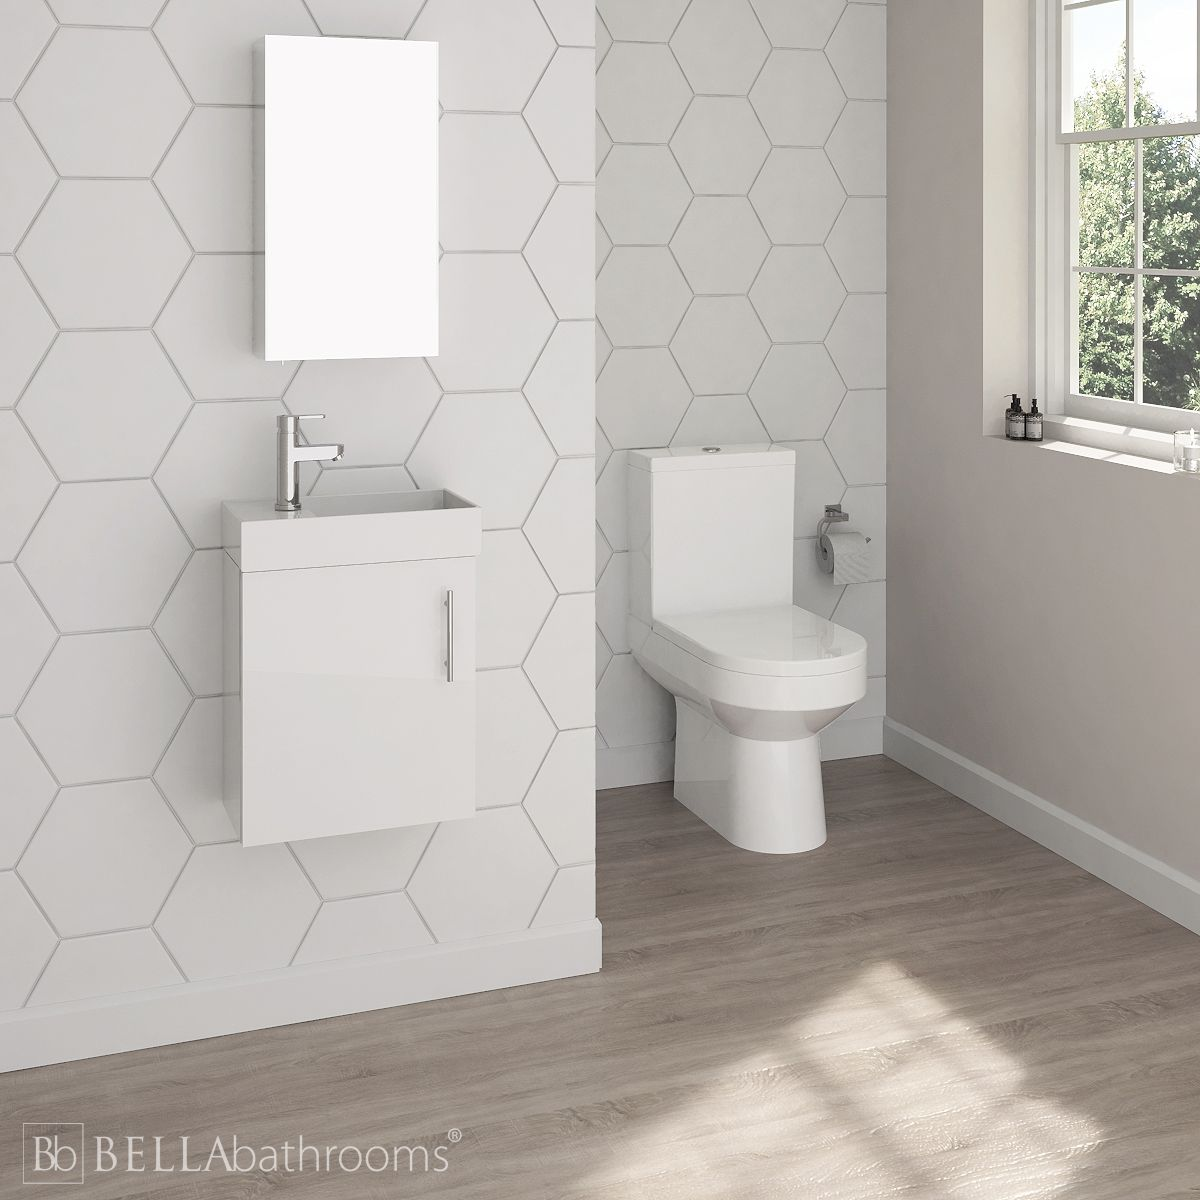 Nuie Vault Wall Hung Vanity Unit and Toilet Set